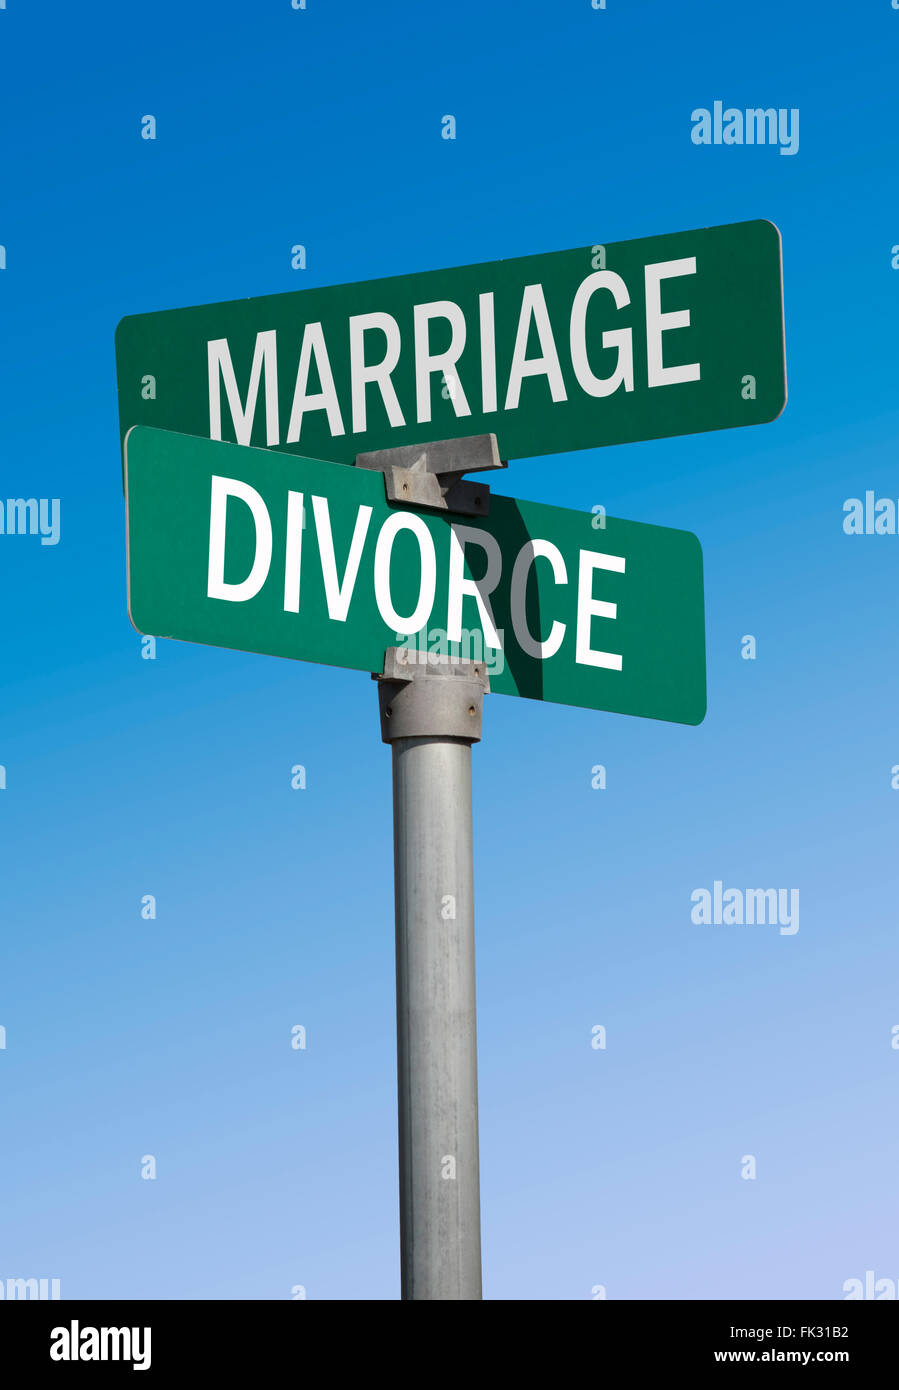 green street sign marriage and divorce - Stock Image